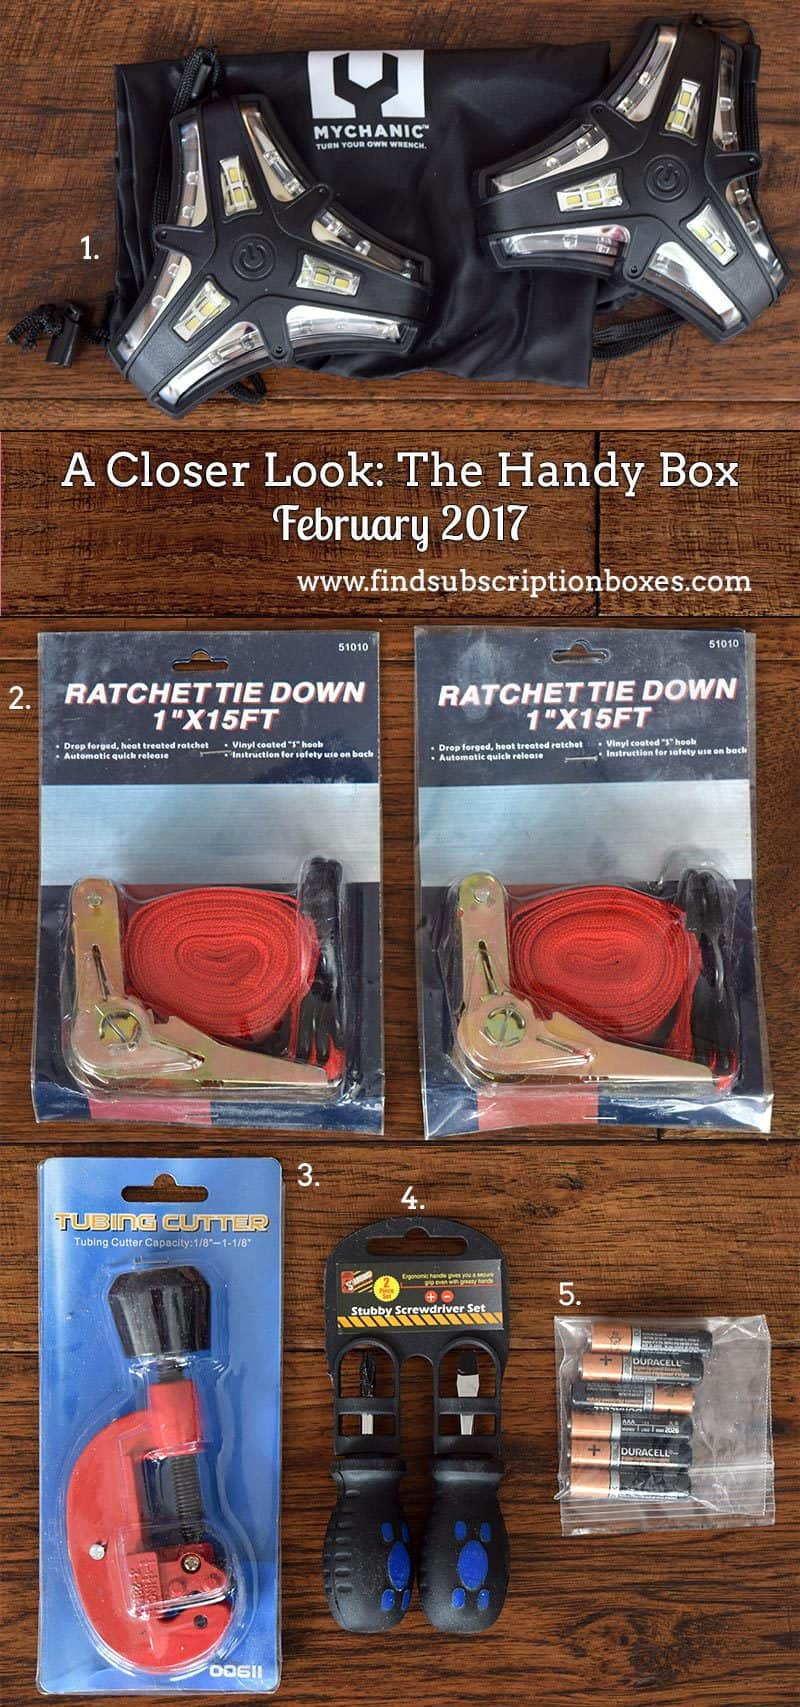 February 2017 The Handy Box Review - Inside the Box